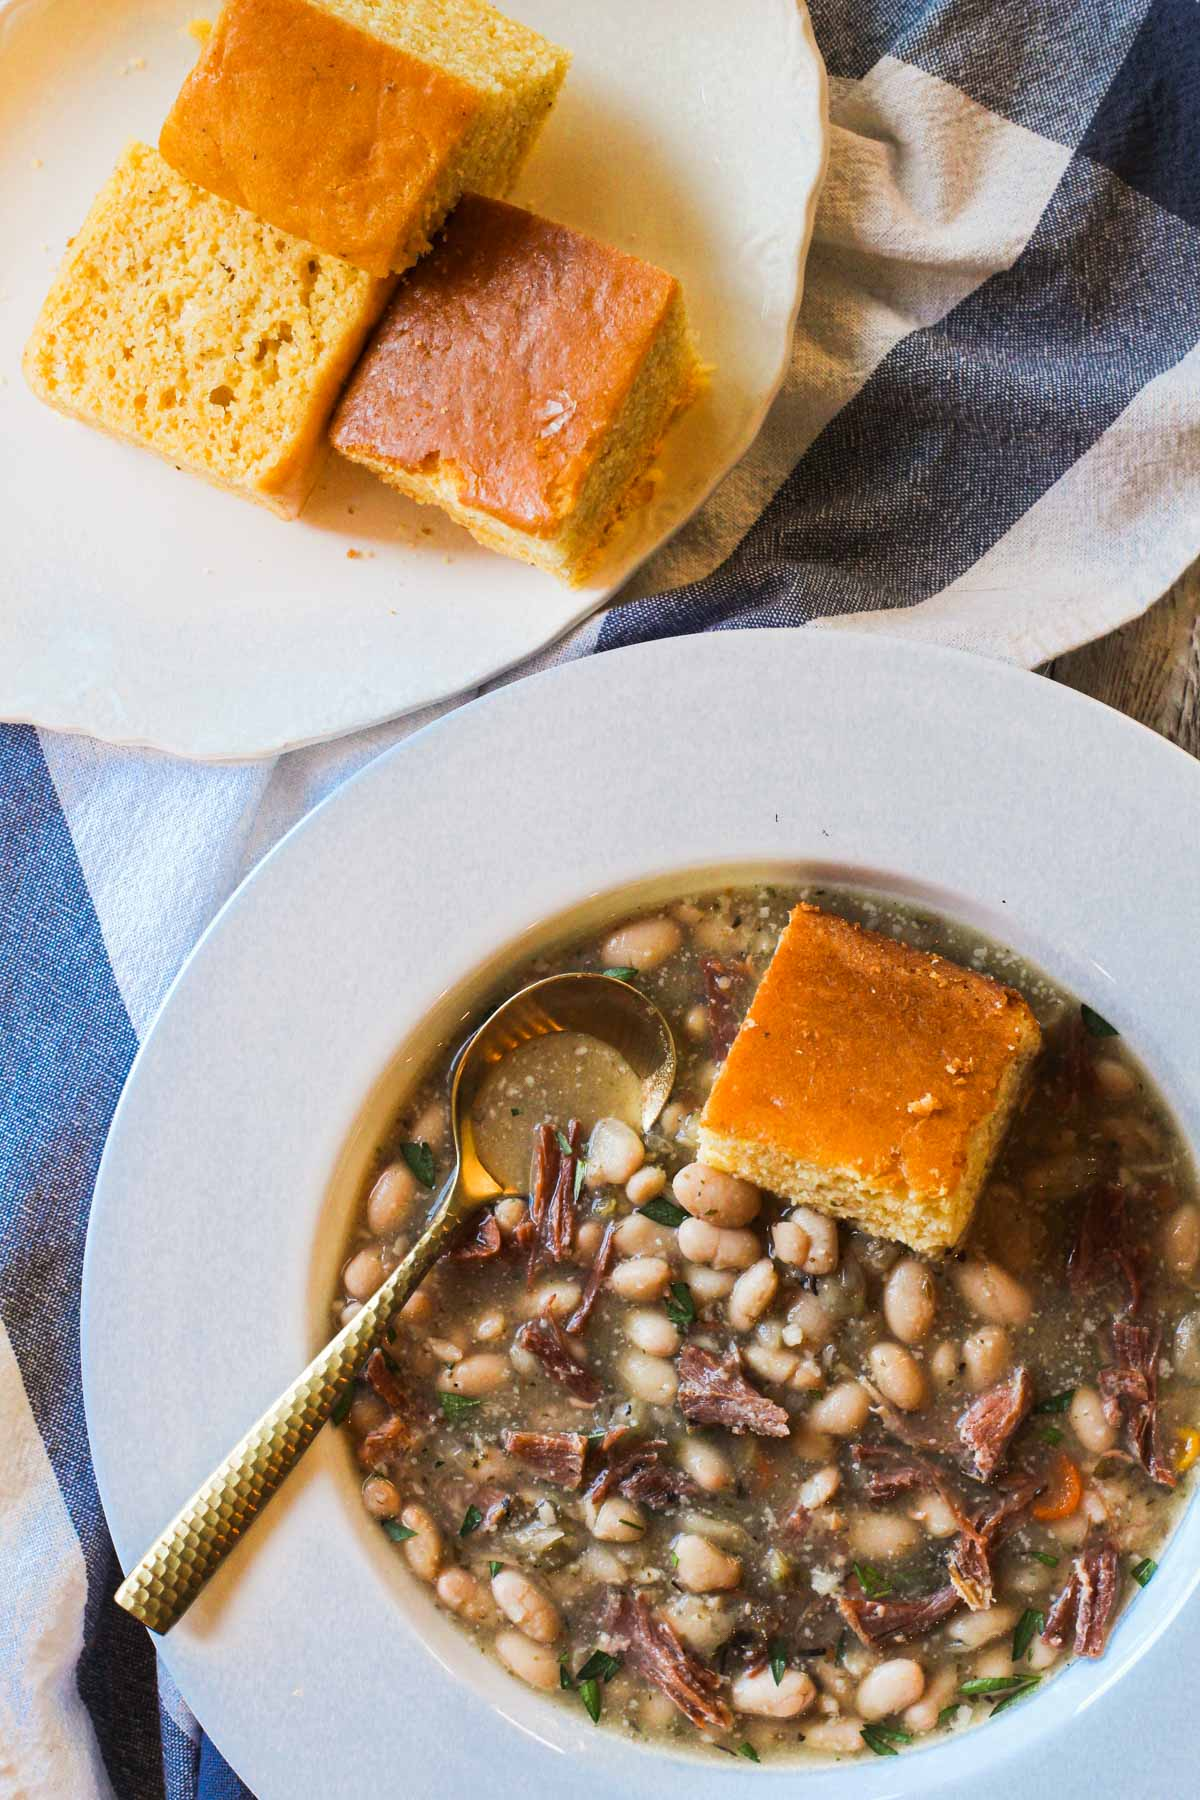 Ham and Bean made with ham shank and great northern beans served with pieces of corn bread